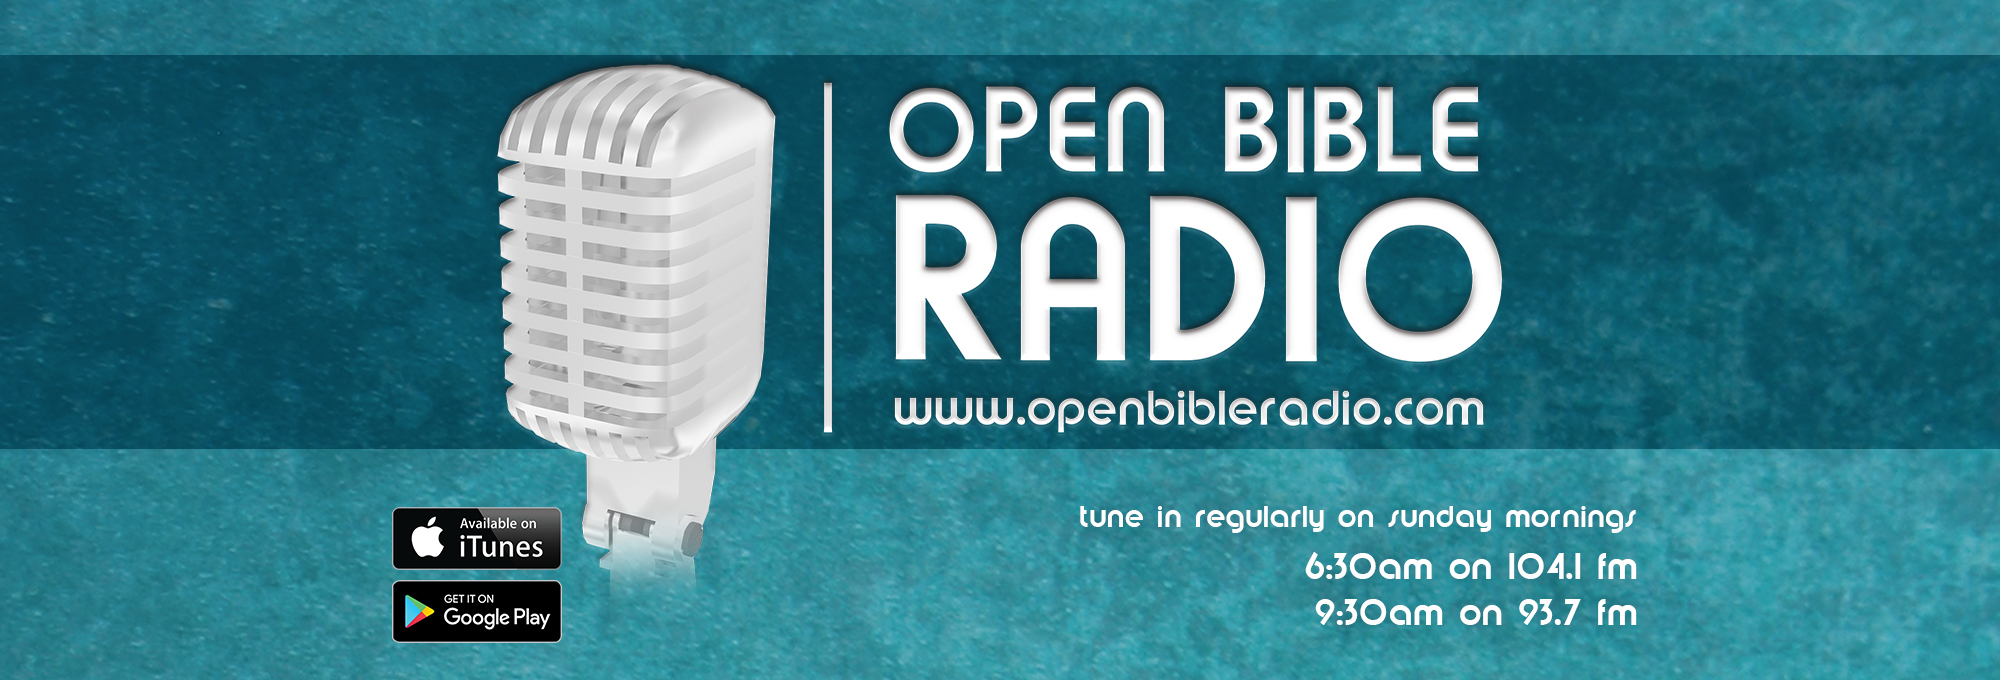 Open bible radio banner